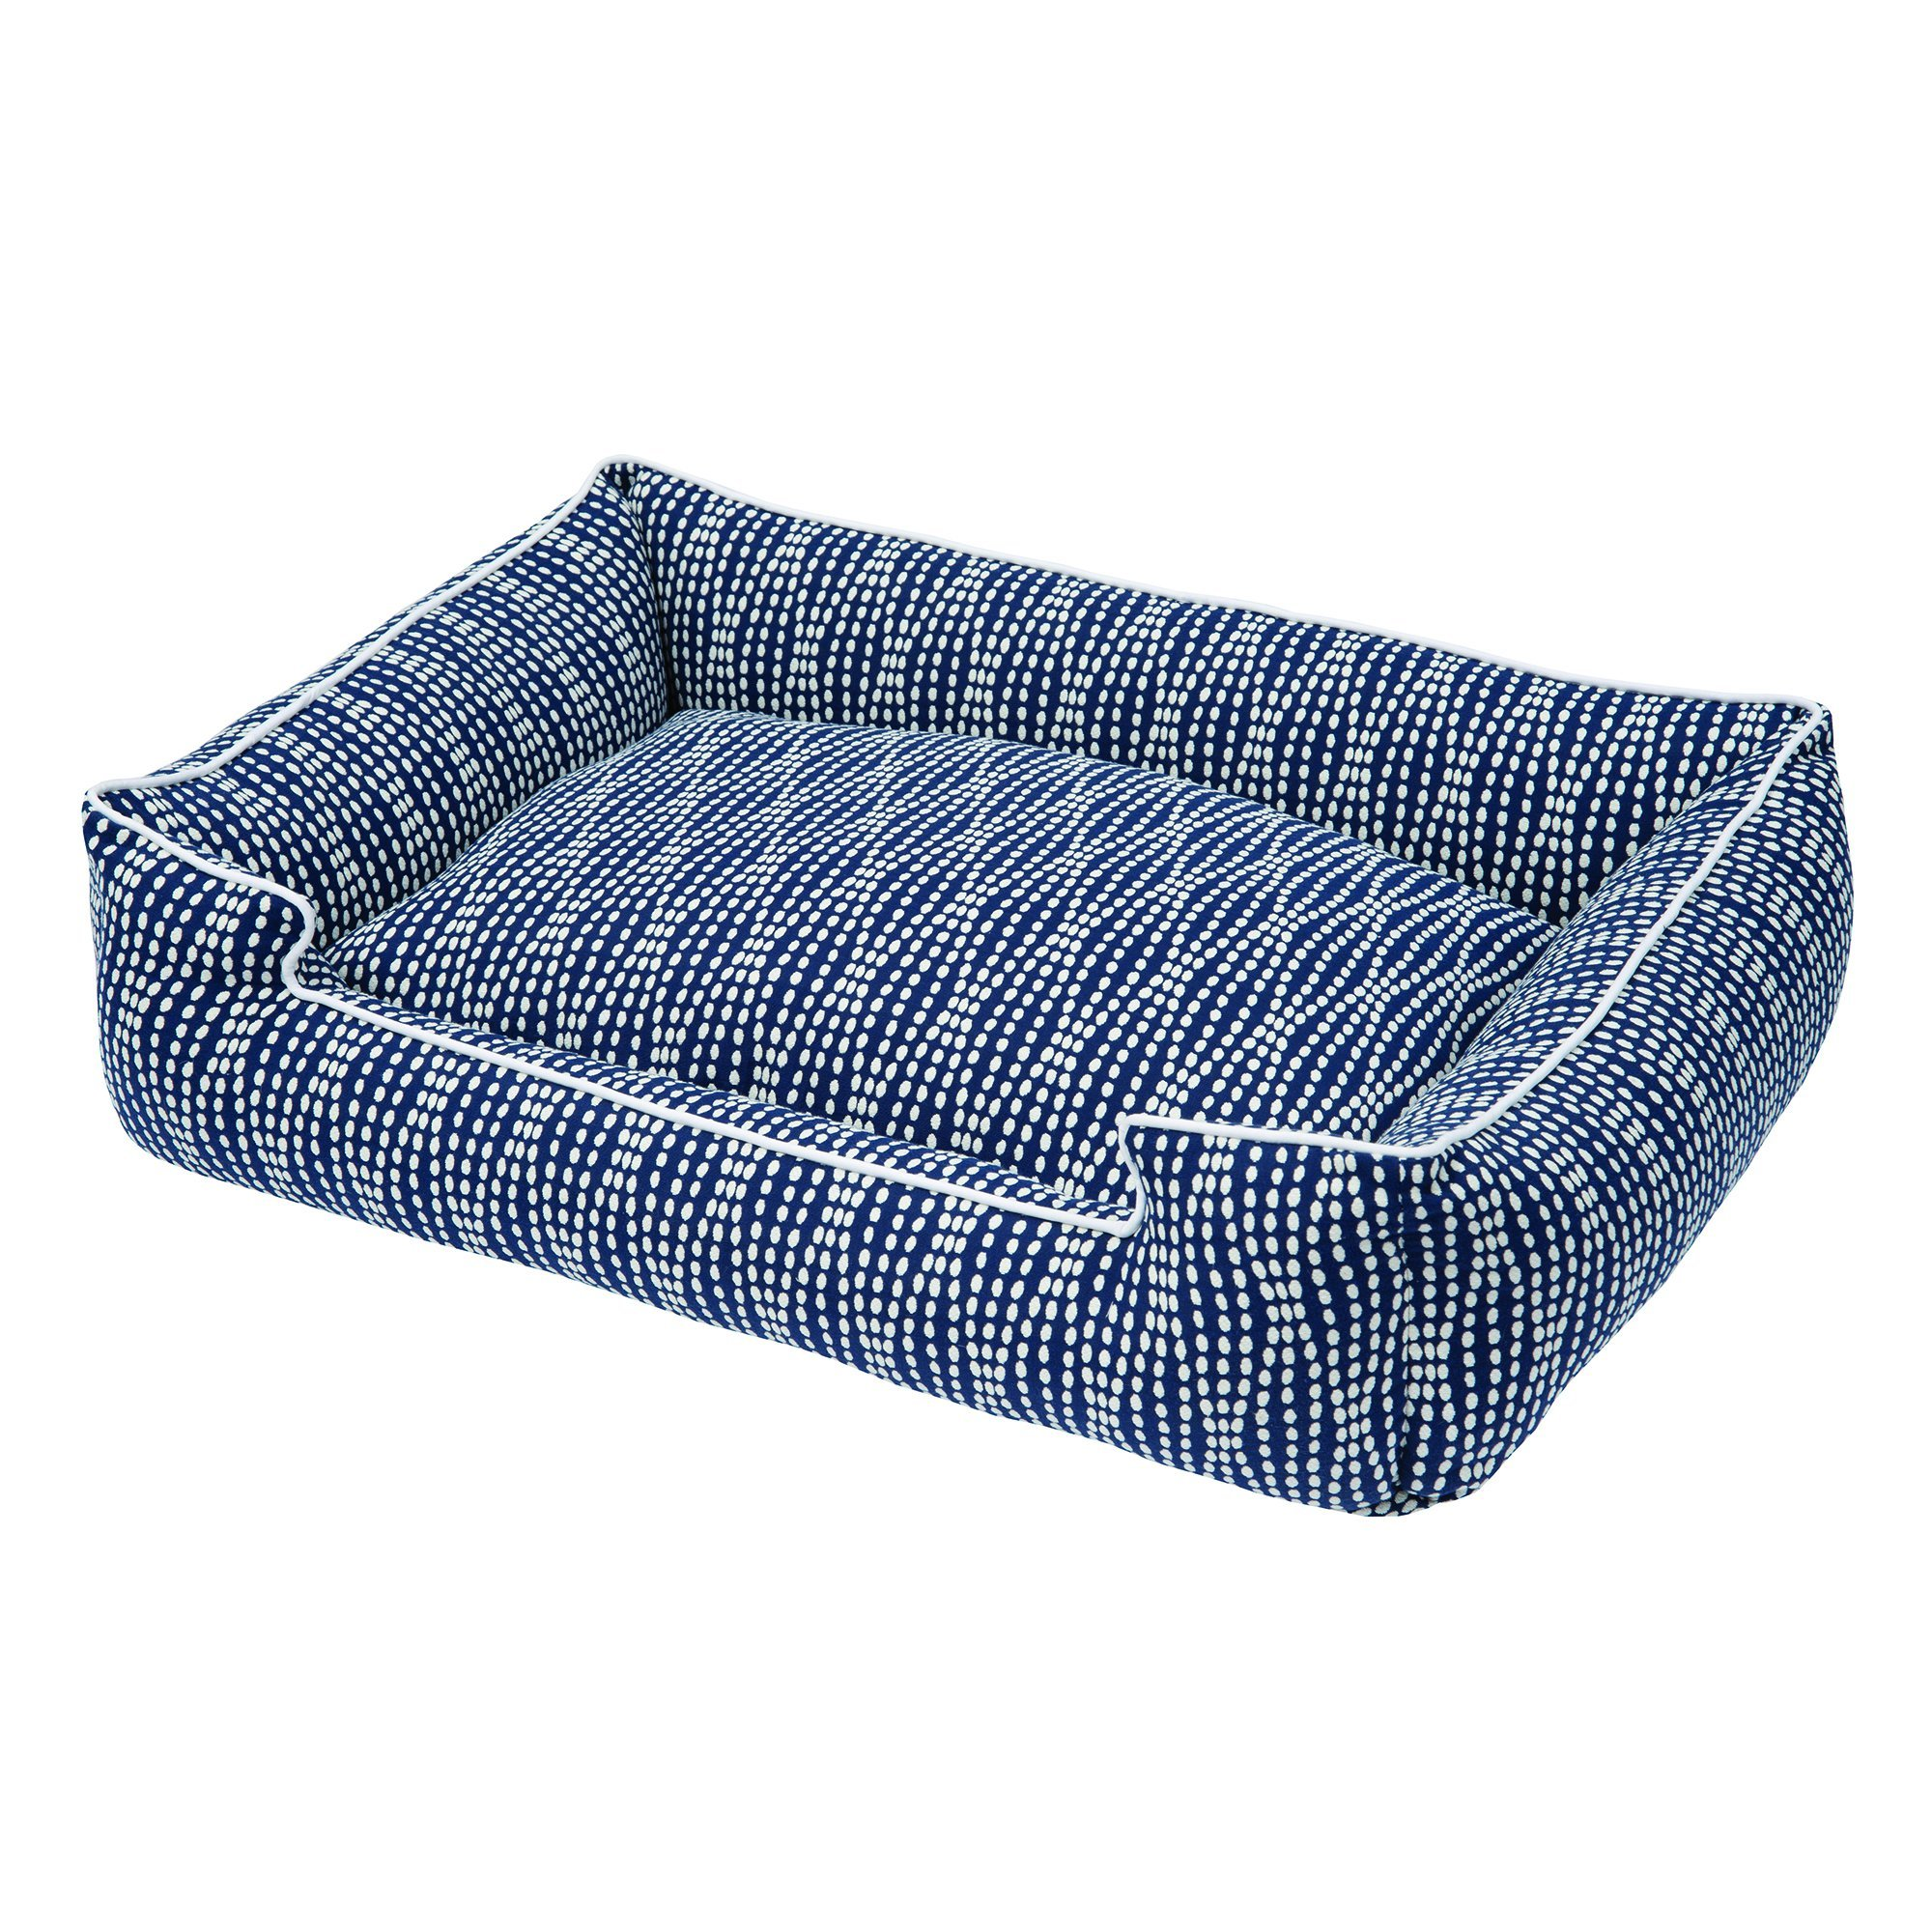 Jax and Bones Pearl Cotton Blend Lounge Dog Bed, Small, Navy